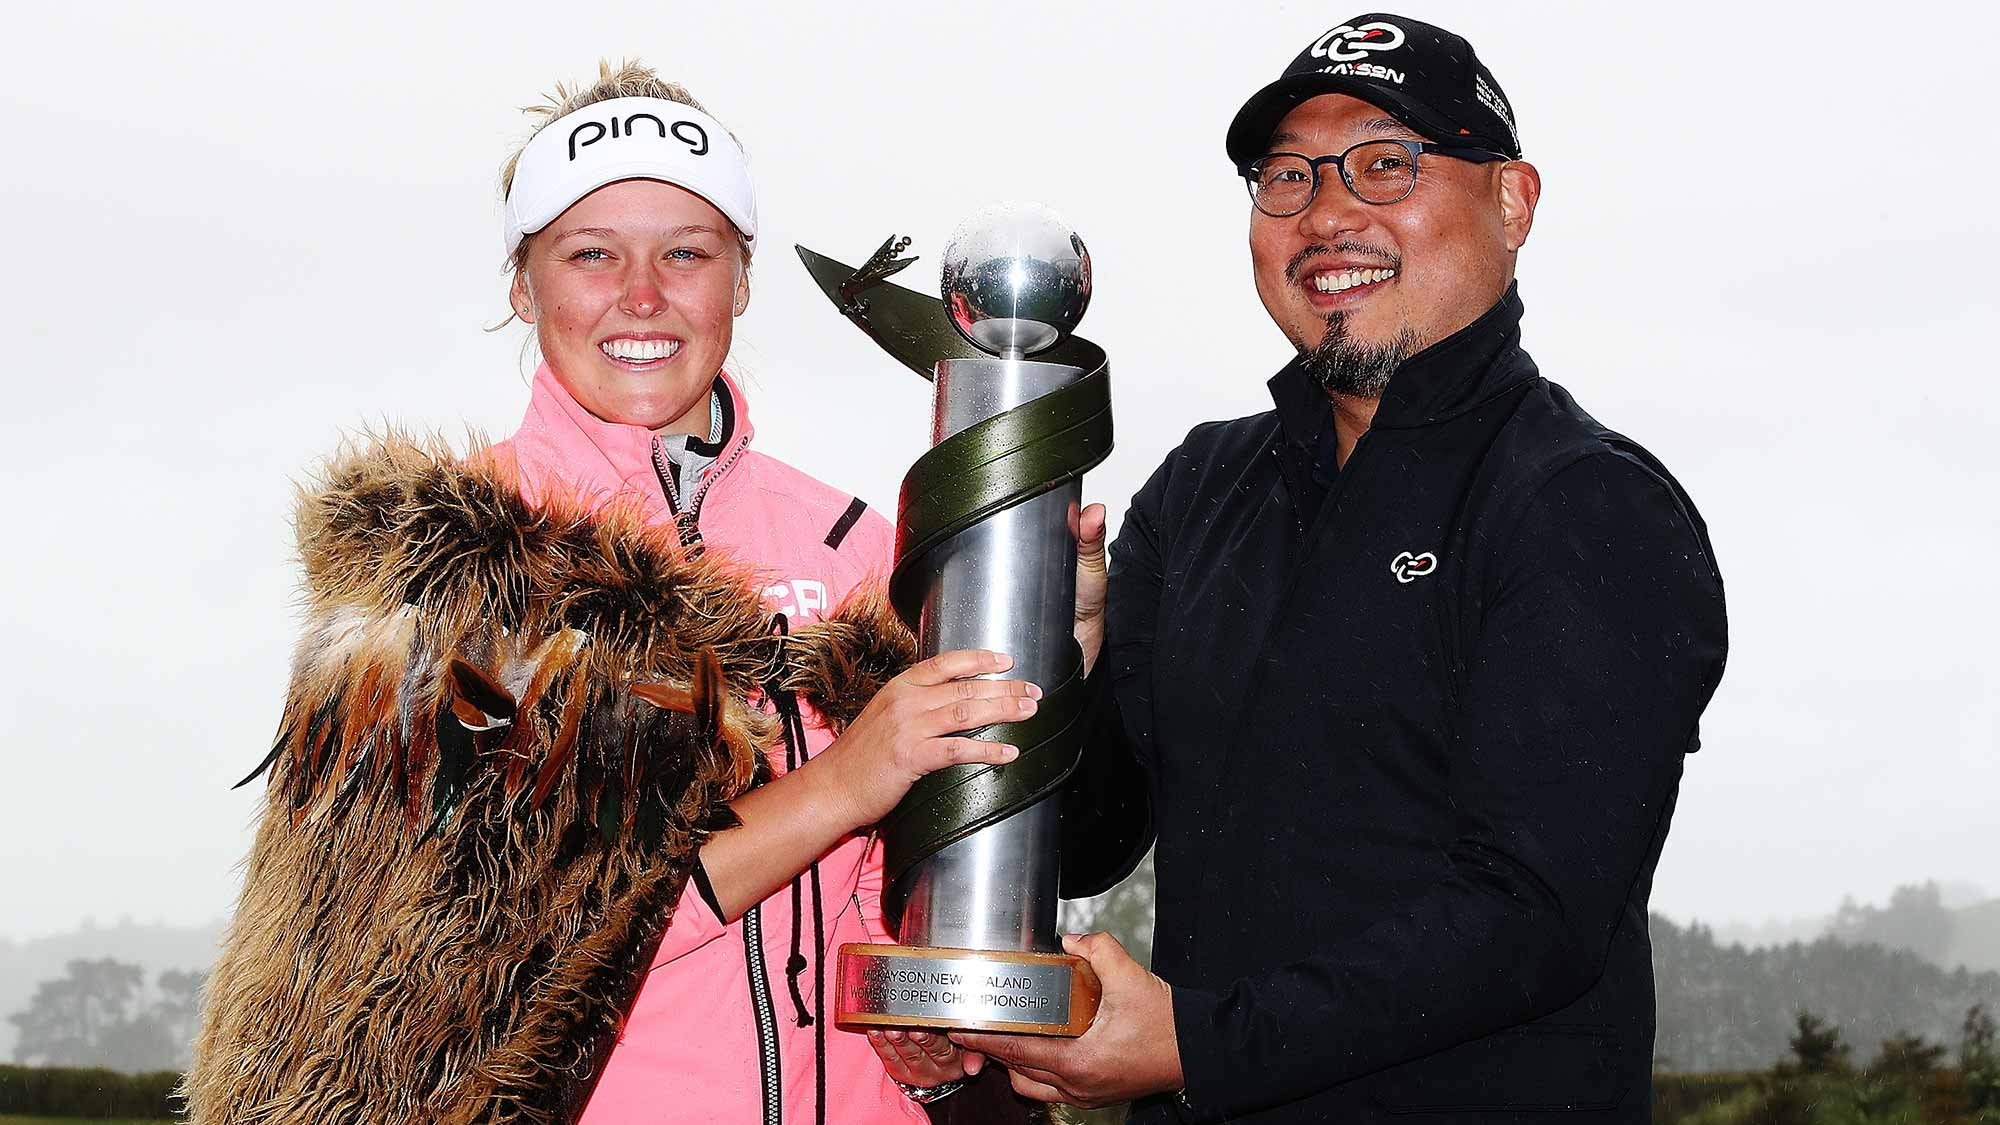 Brooke Henderson of Canada is presented the New Zealand Women's Open trophy by MC Kim during day five of the New Zealand Women's Open at Windross Farm